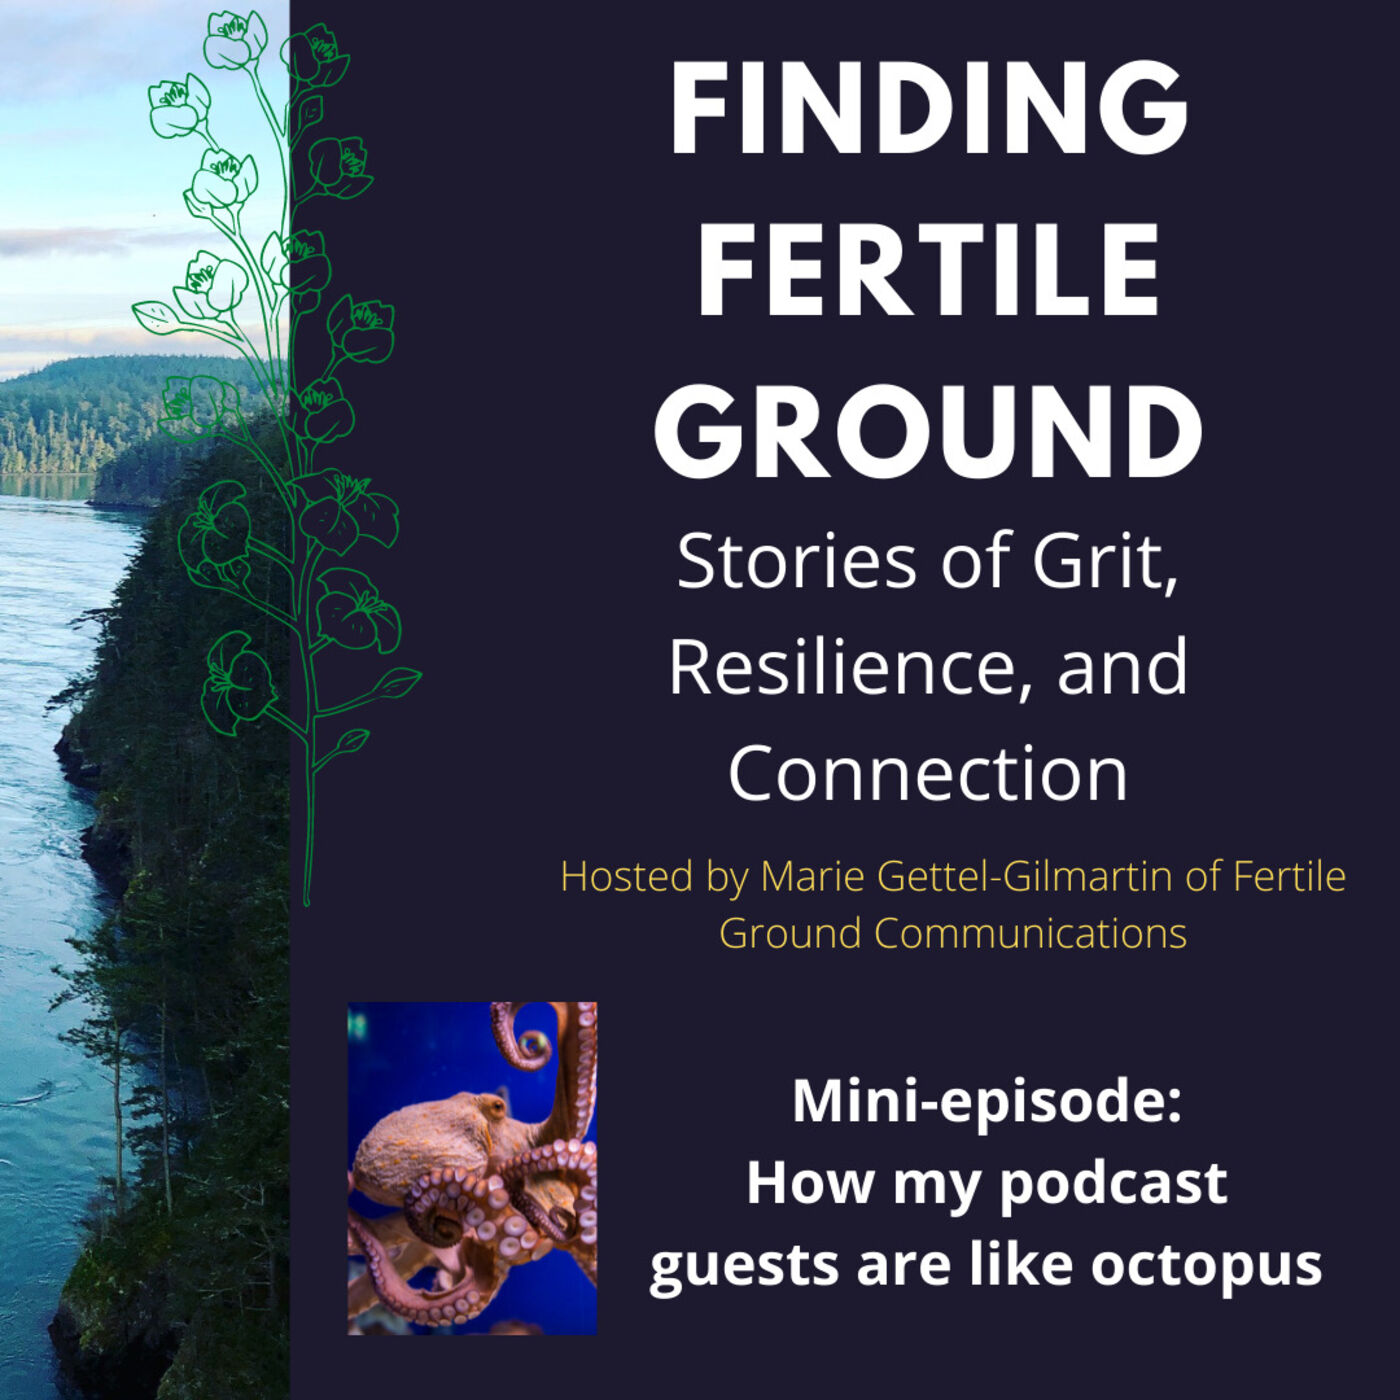 Mini-episode: How my podcast guests are like octopus